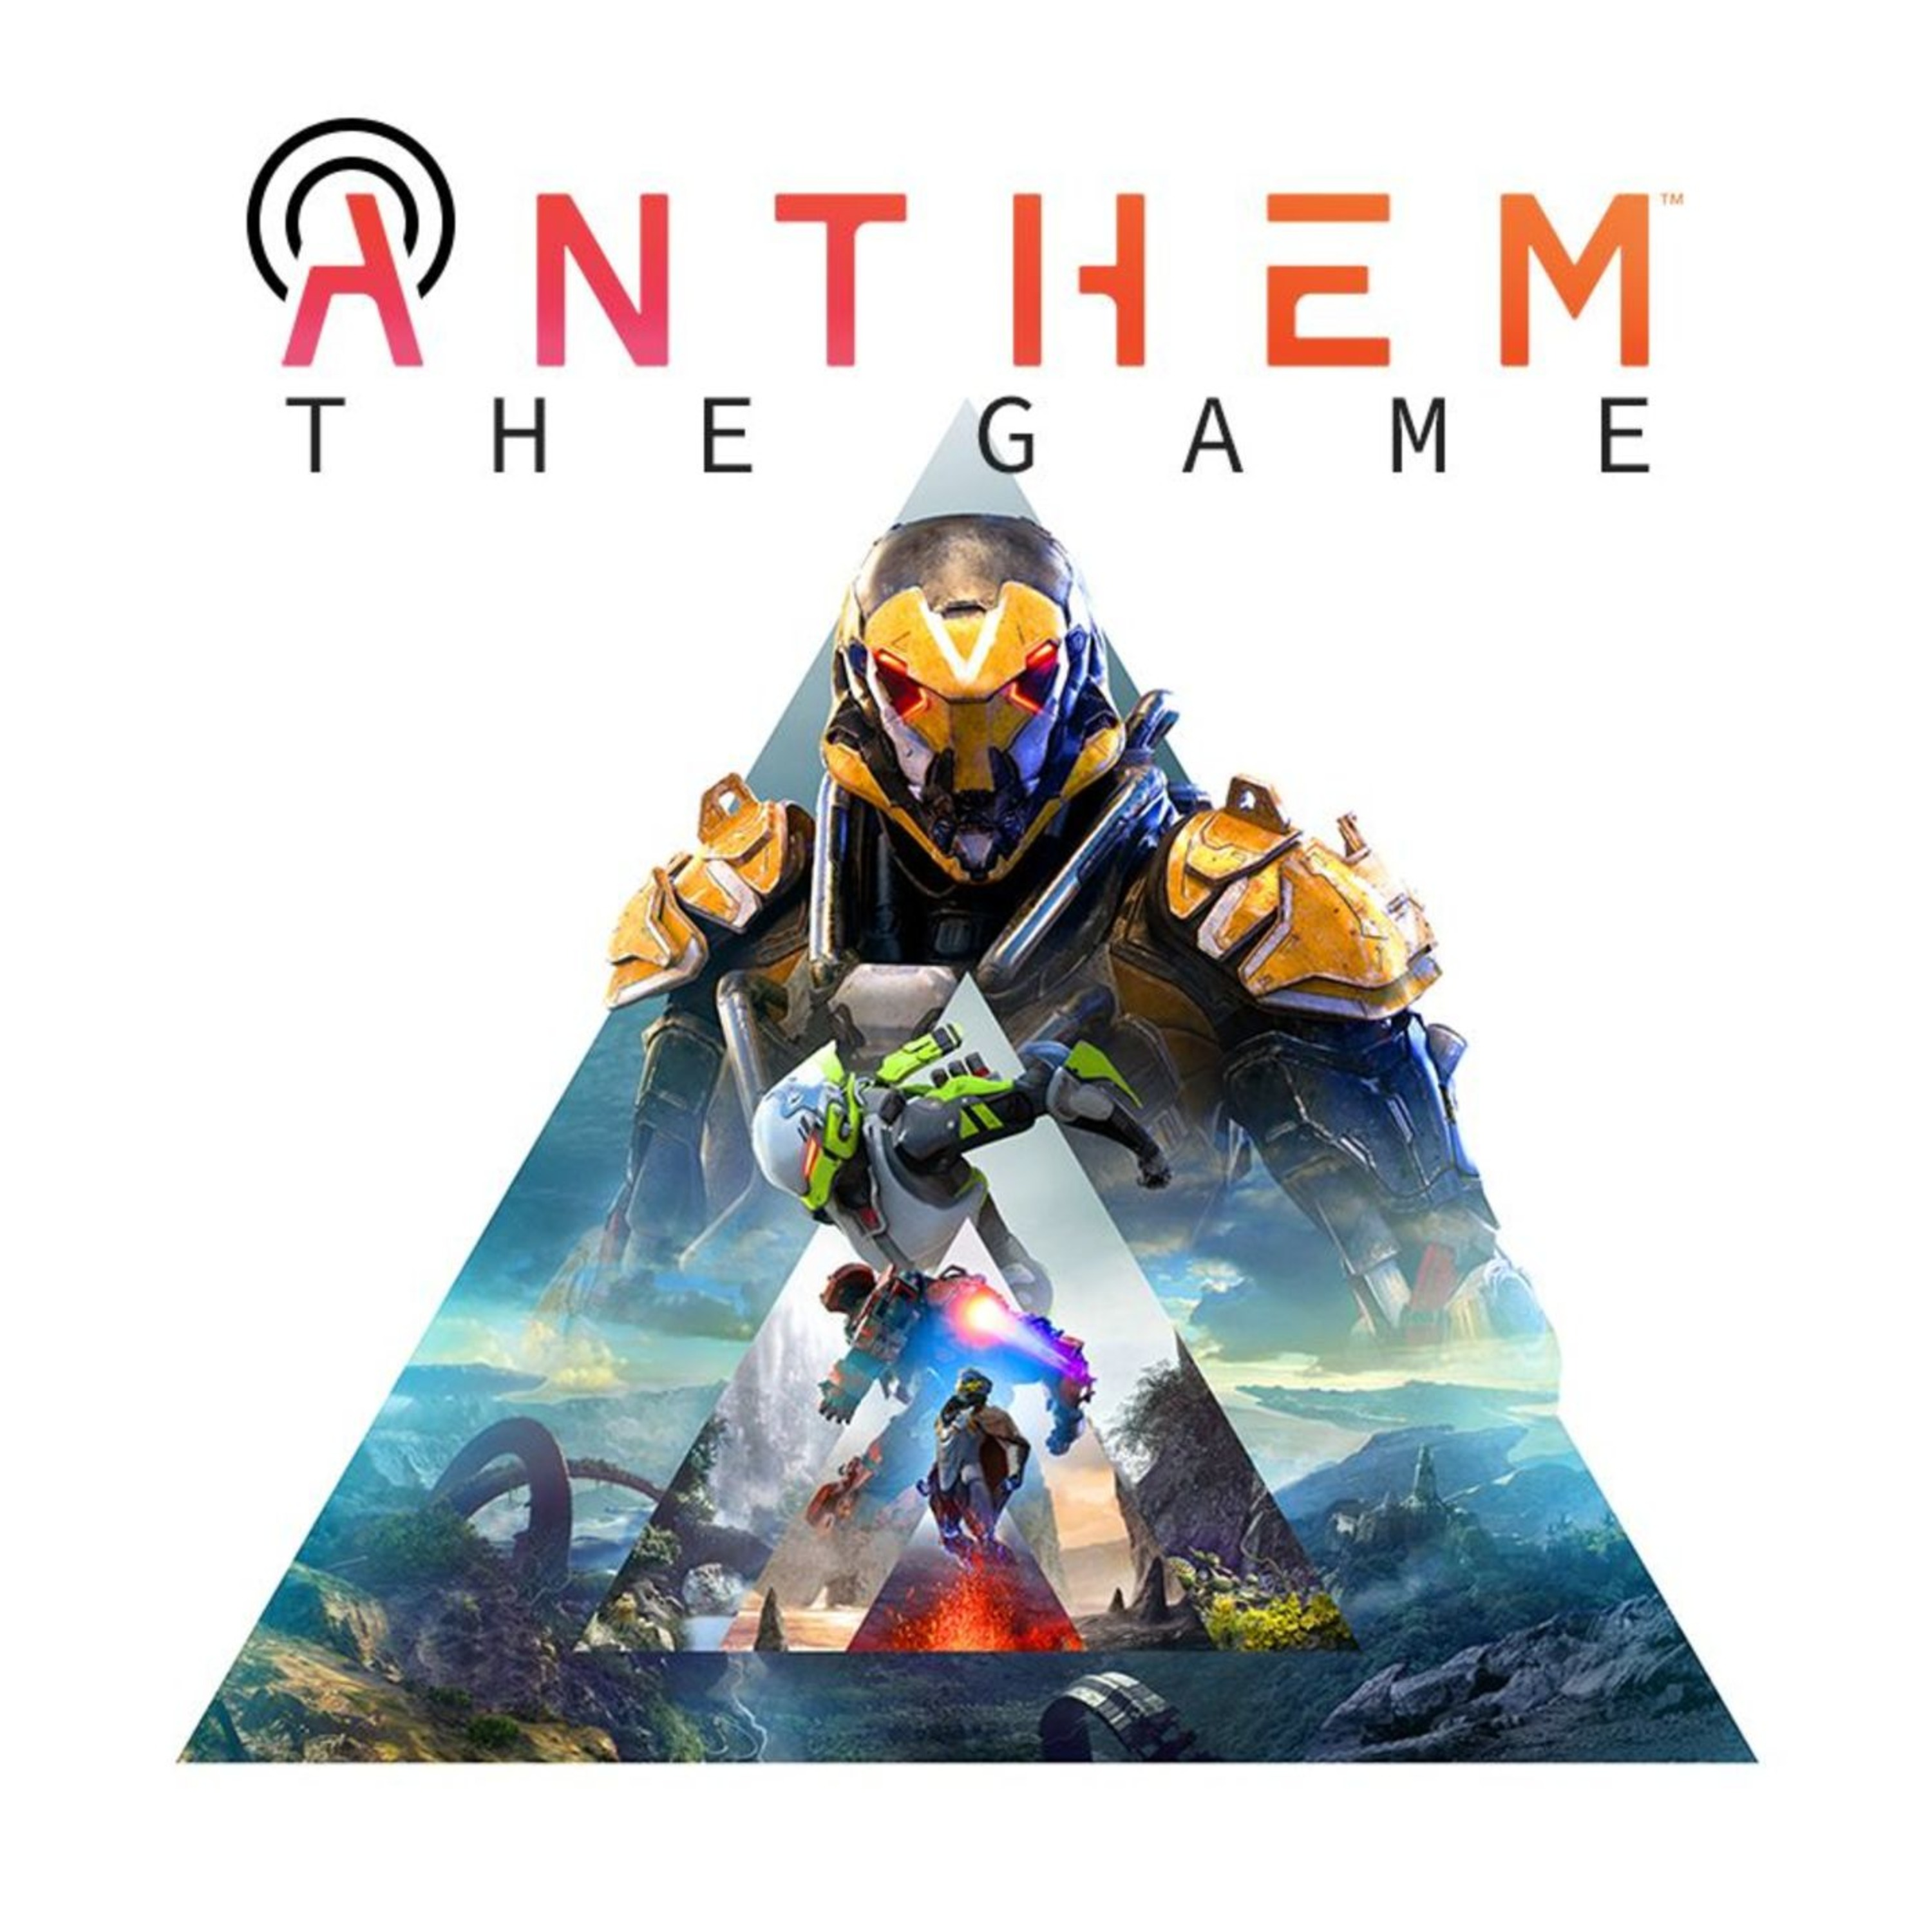 Introduction - Episode 1 - Anthem The Game